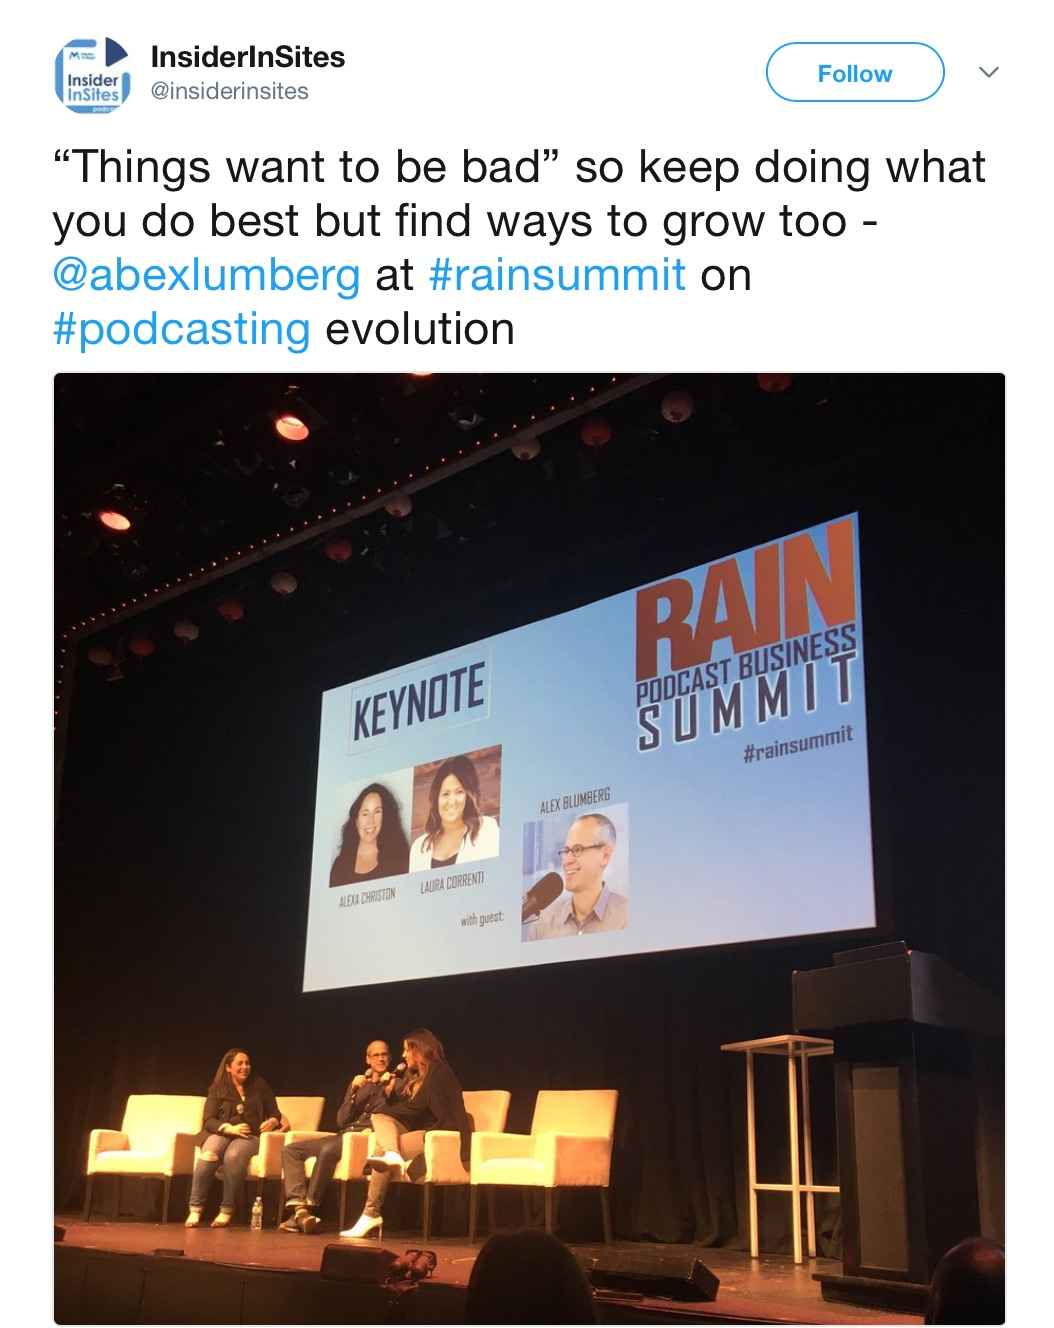 """InsiderInSites_on_Twitter___""""Things_want_to_be_bad""""_so_keep_doing_what_you_do_best_but_find_ways_to_grow_too_-__abexlumberg_at__rainsummit_on__podcasting_evolution…_https___t_co_dWKllJOj4S_.jpg"""